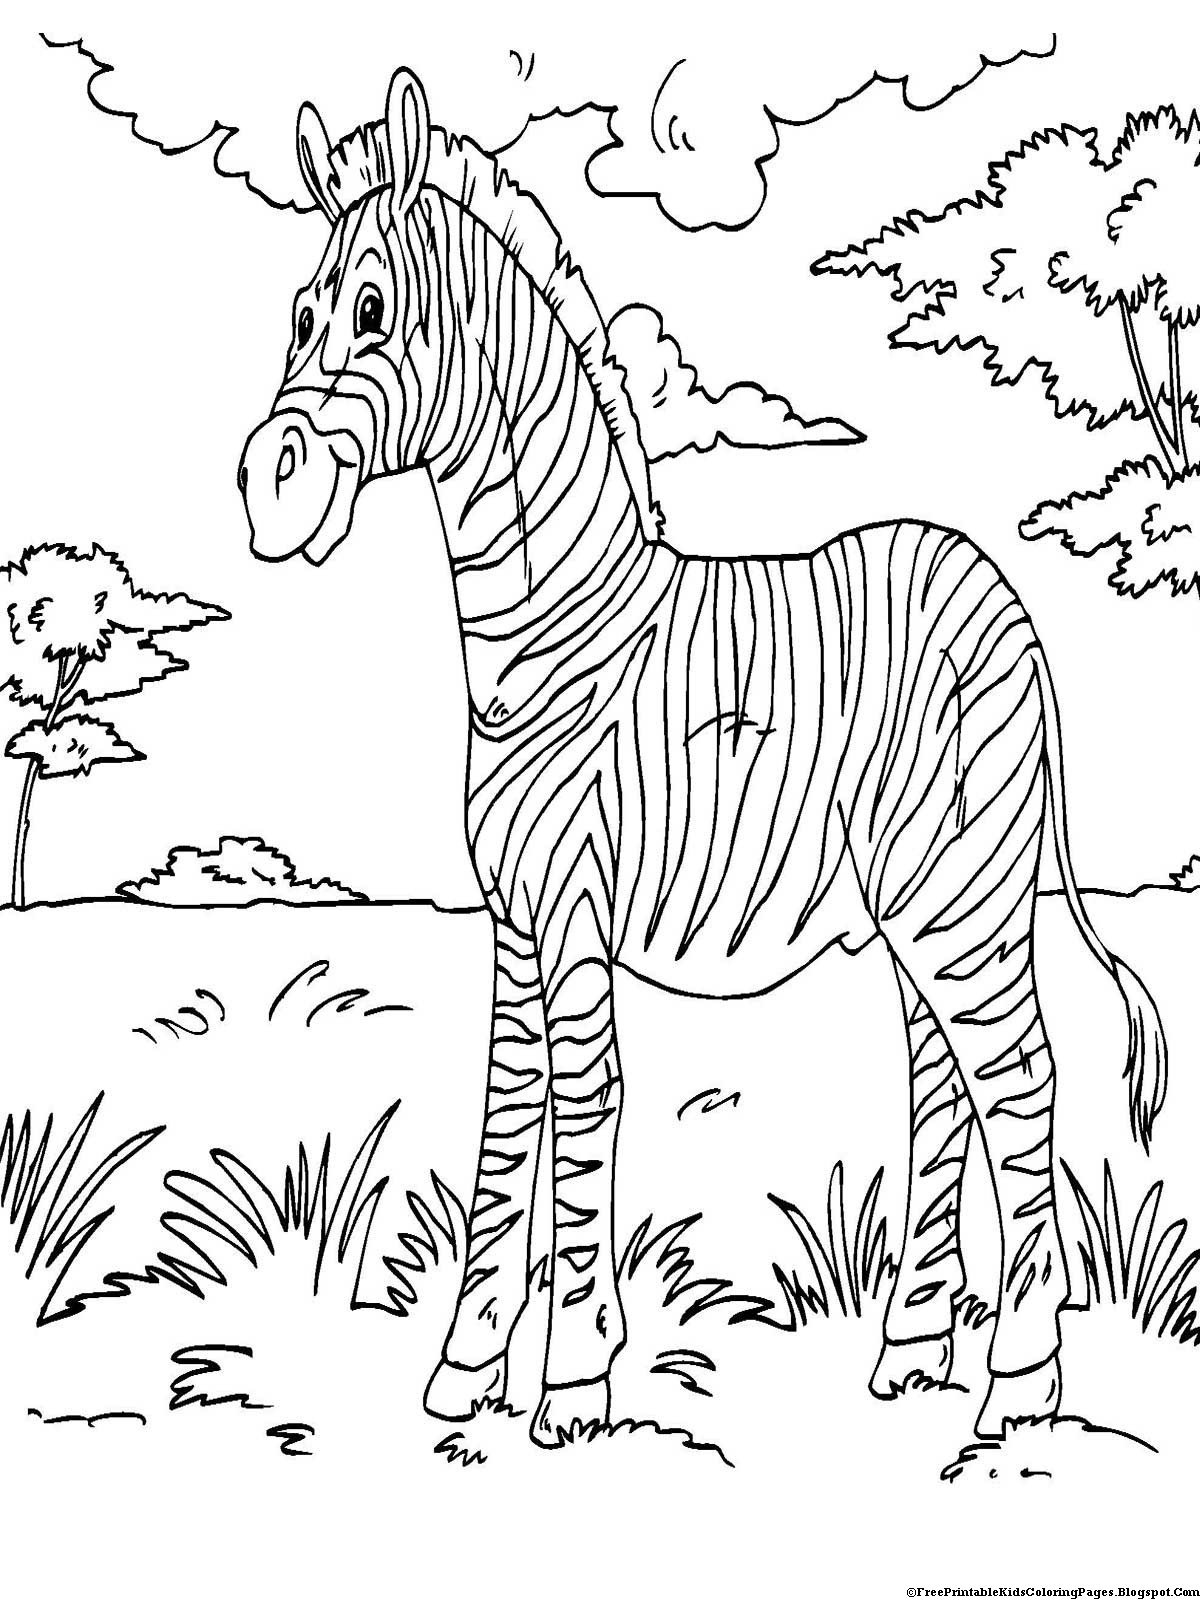 Printable Coloring Pages Kids  Zebra Coloring Pages Free Printable Kids Coloring Pages